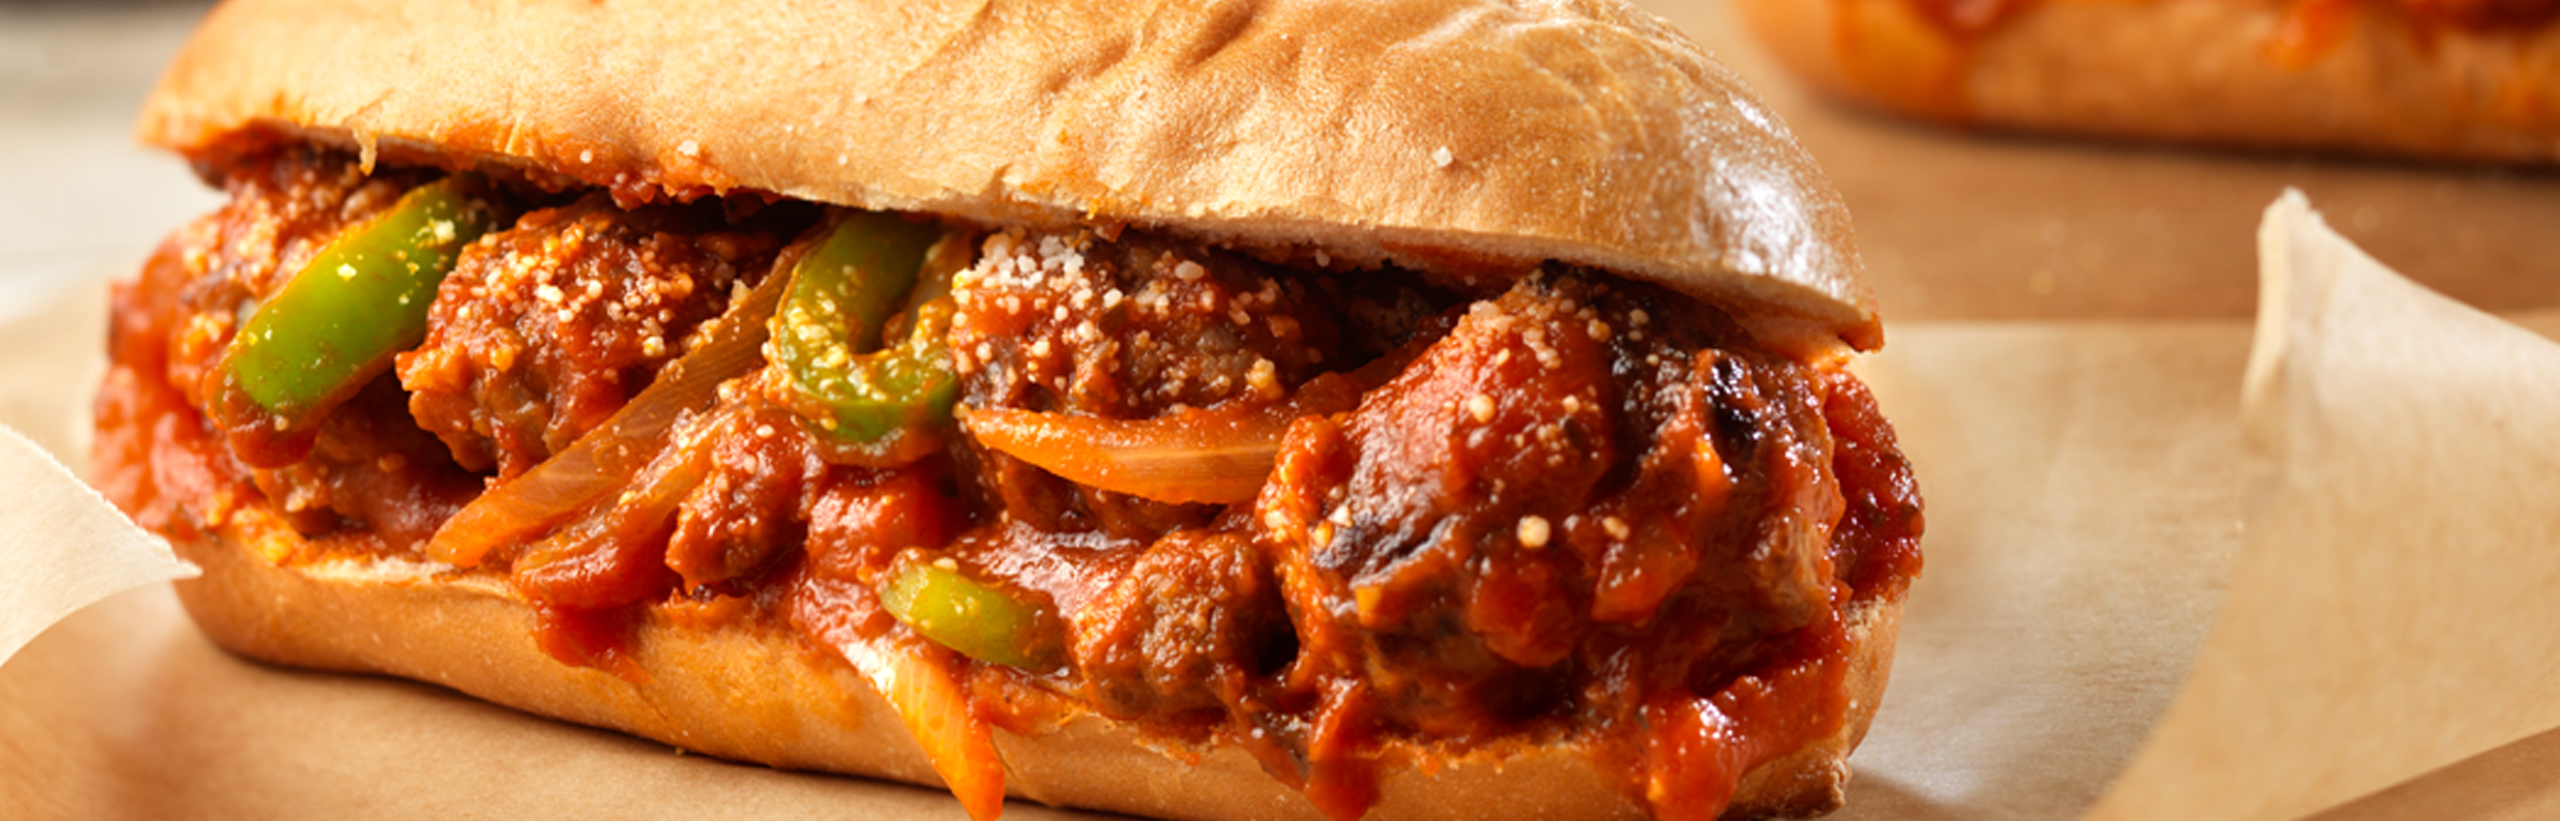 Spicy Sausage and Peppers Sandwiches